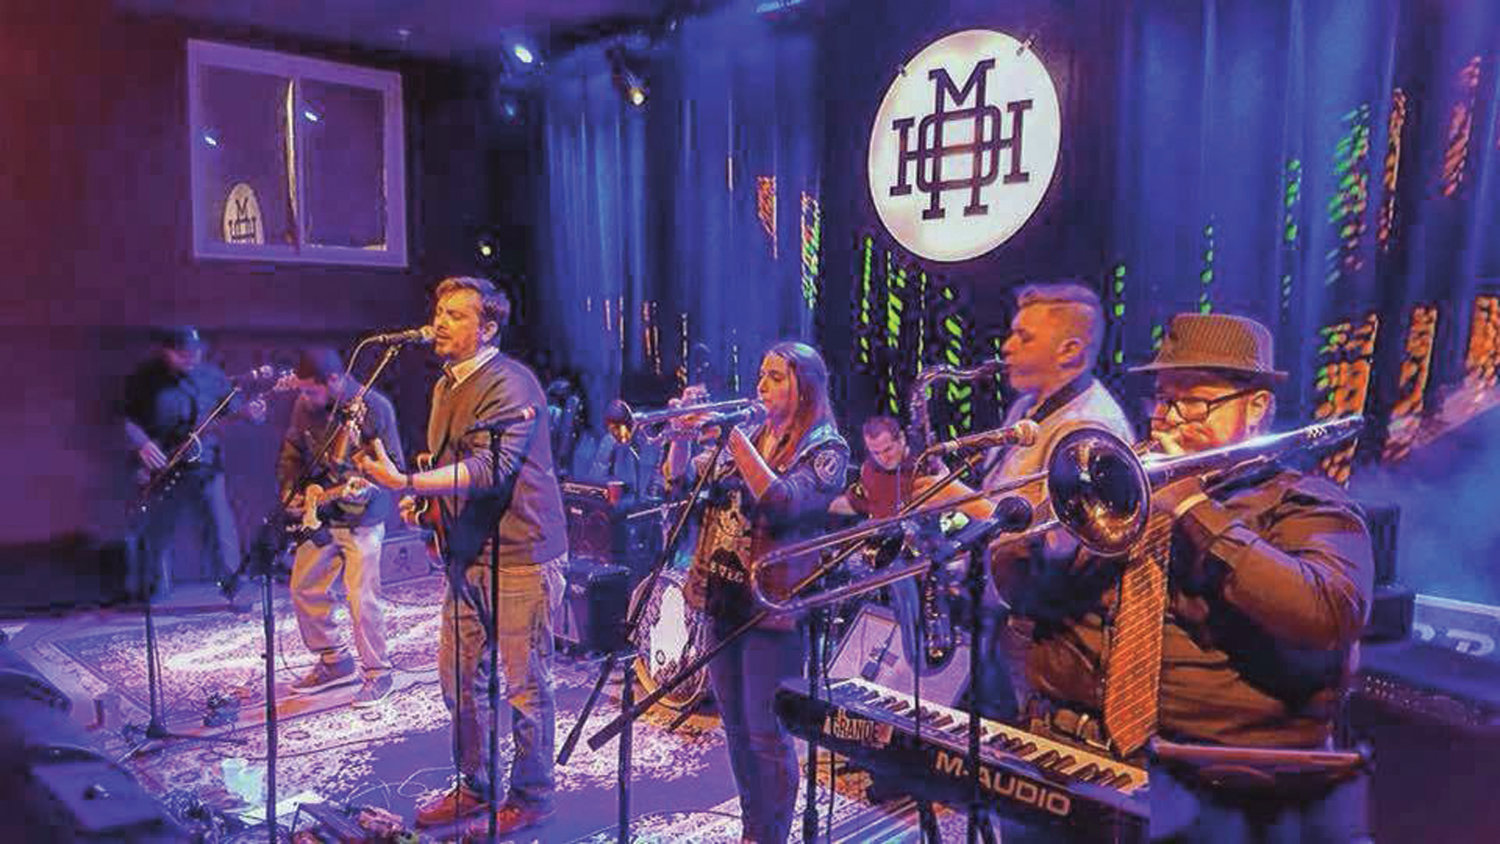 DANCE MUSIC: El Grande from Portland, Maine, will join Rhode Island groups RI Bred and They Were Robots during an April 20 ska concert at Revival Brewing Company in Cranston.